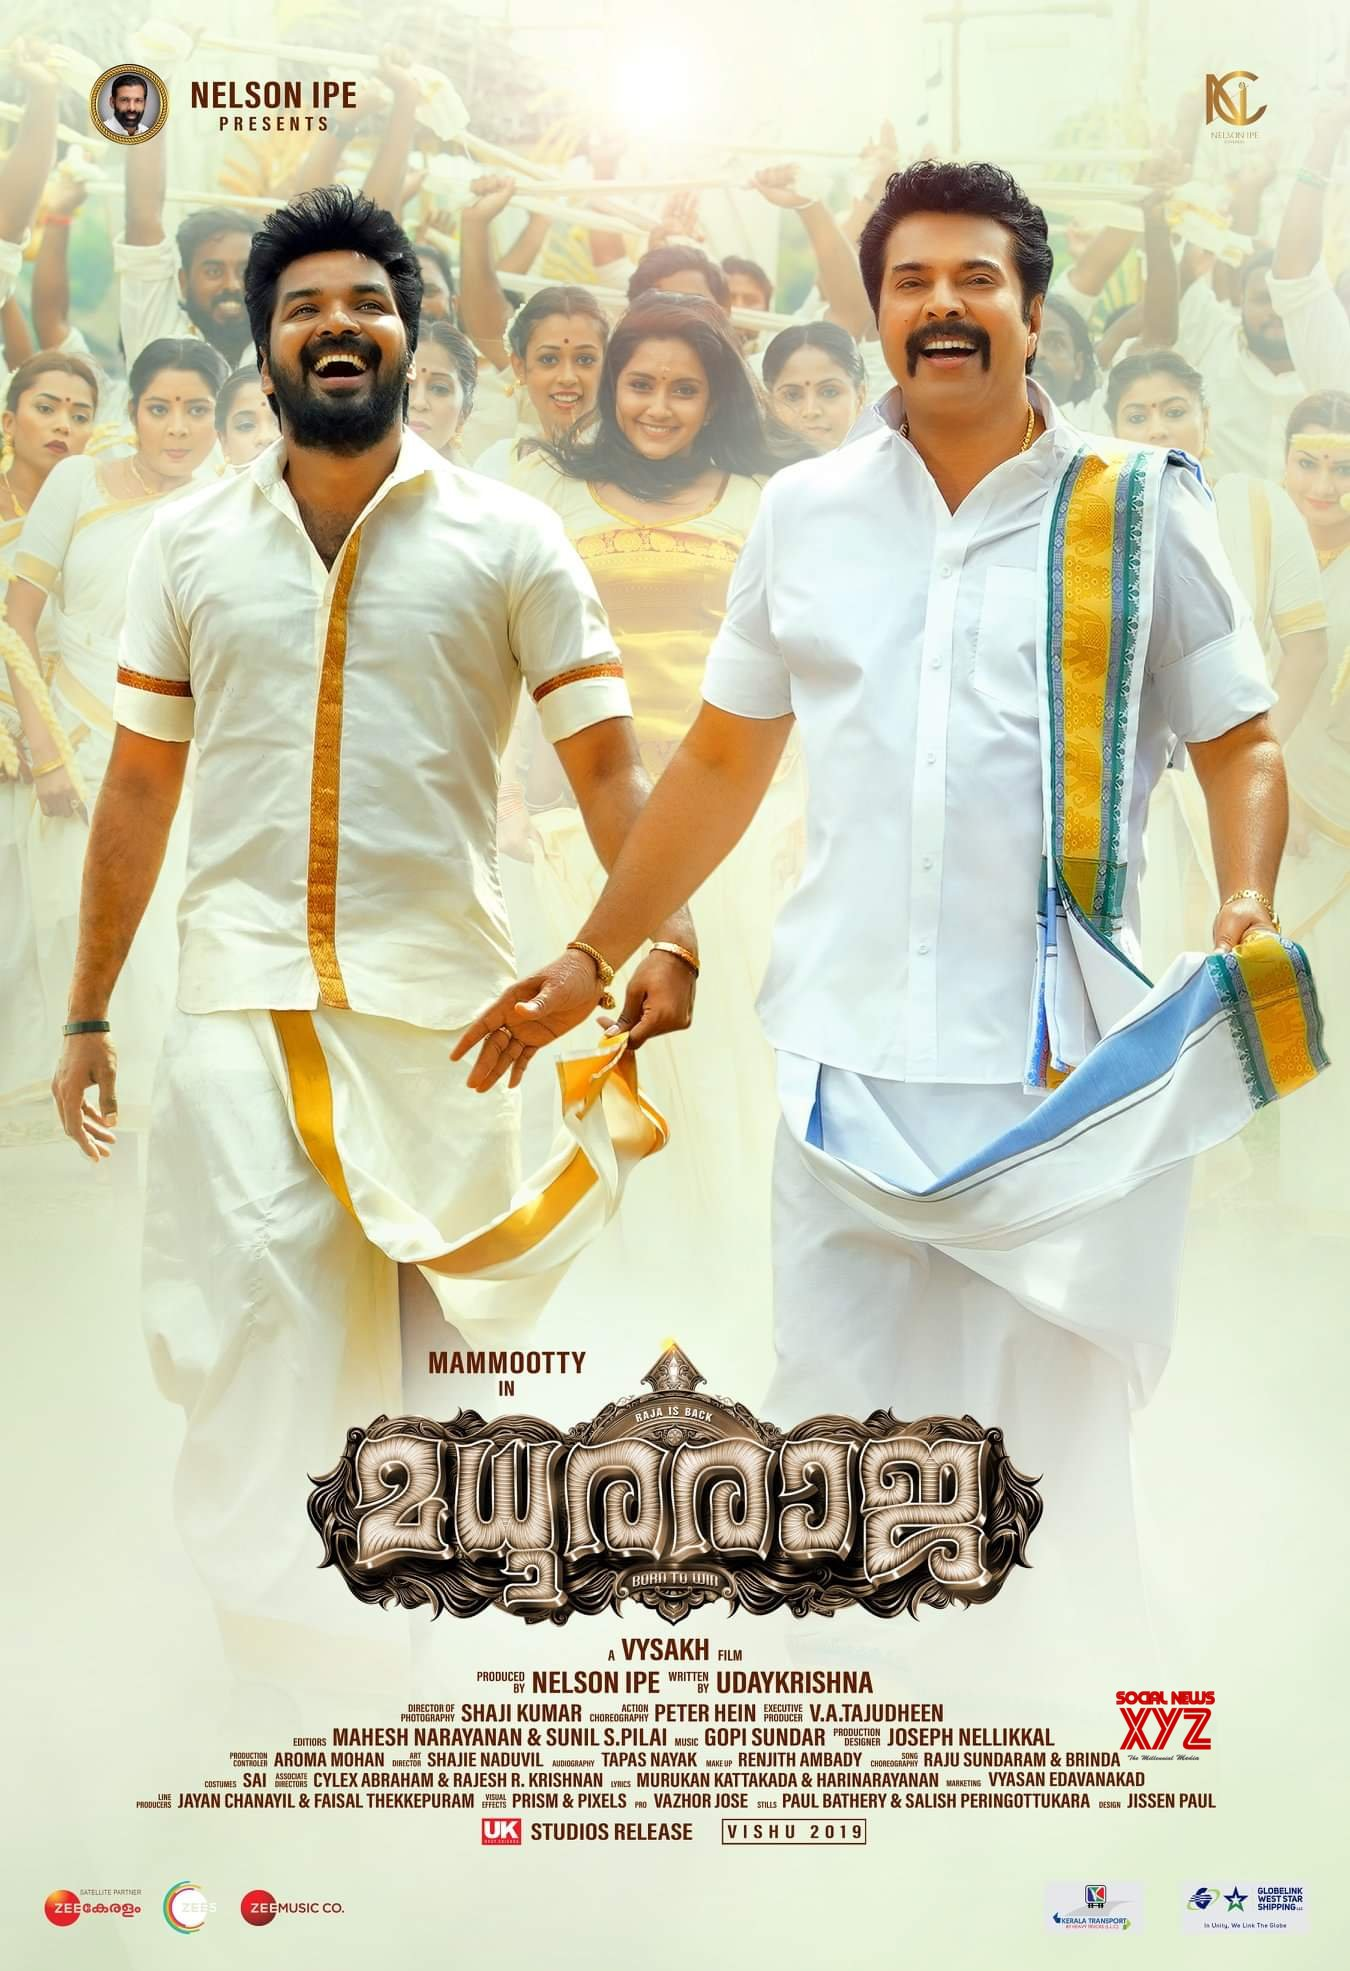 Madura Raja Audio And Motion Poster Will Be Released By Today Evening At 7:30 PM